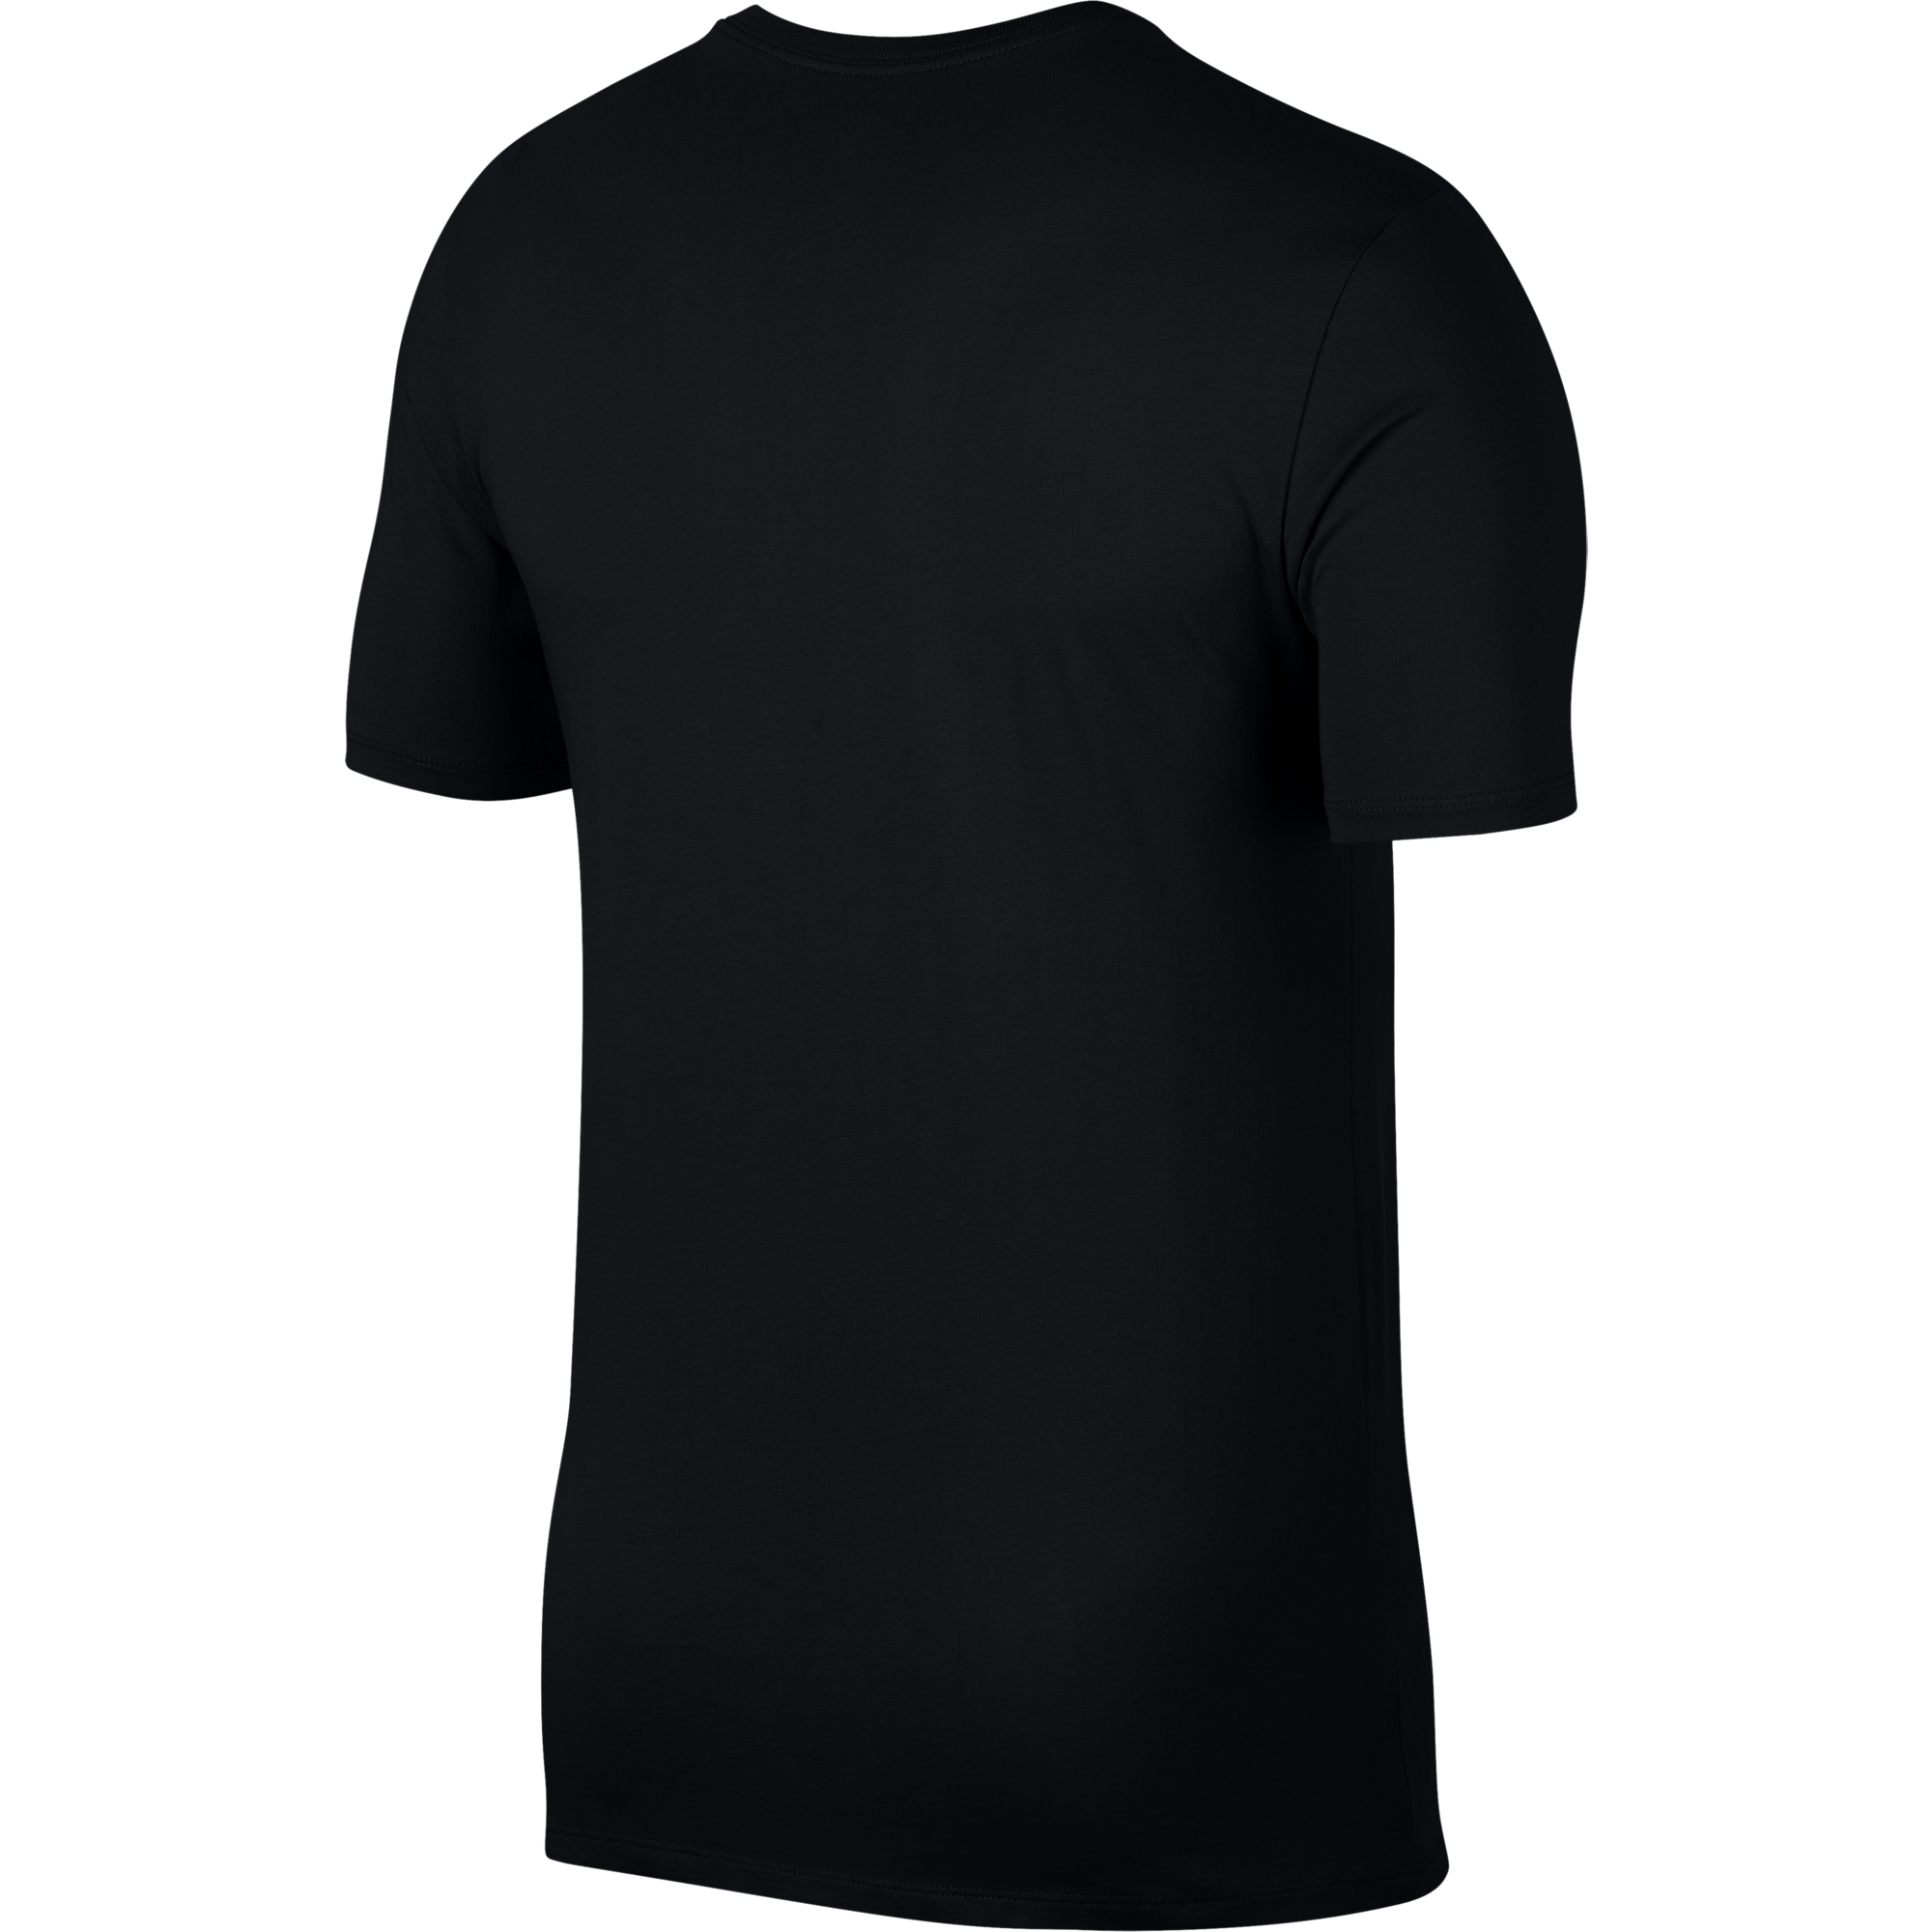 01a76dc9551582 Air Jordan Raptor 7 T Shirts – EDGE Engineering and Consulting Limited